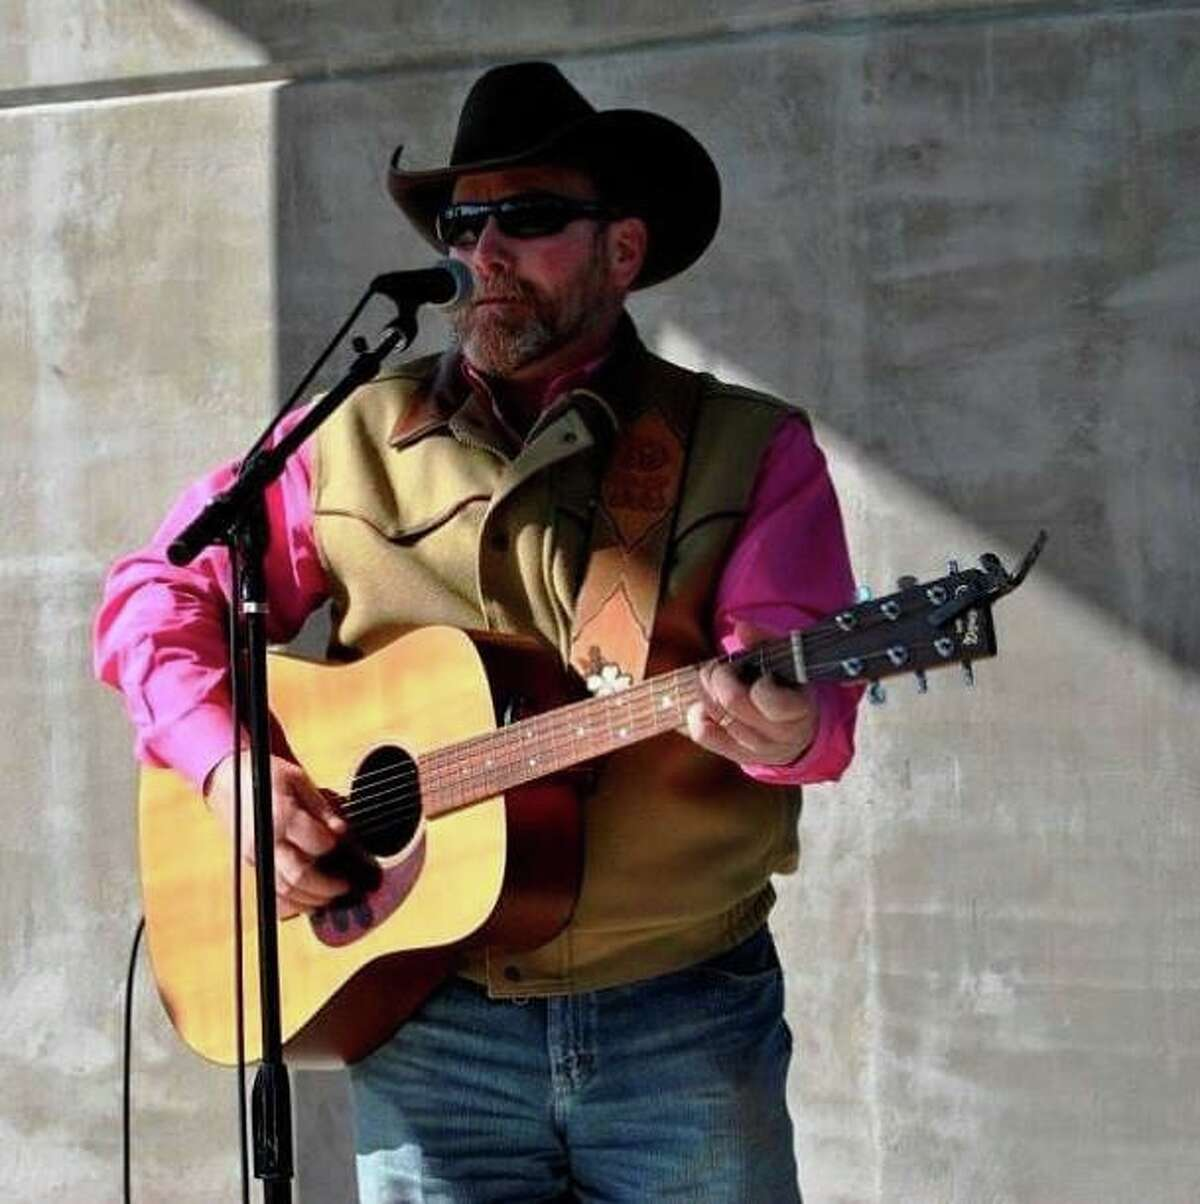 McMahon writes Christian country music and performs locally. He has several albums out.